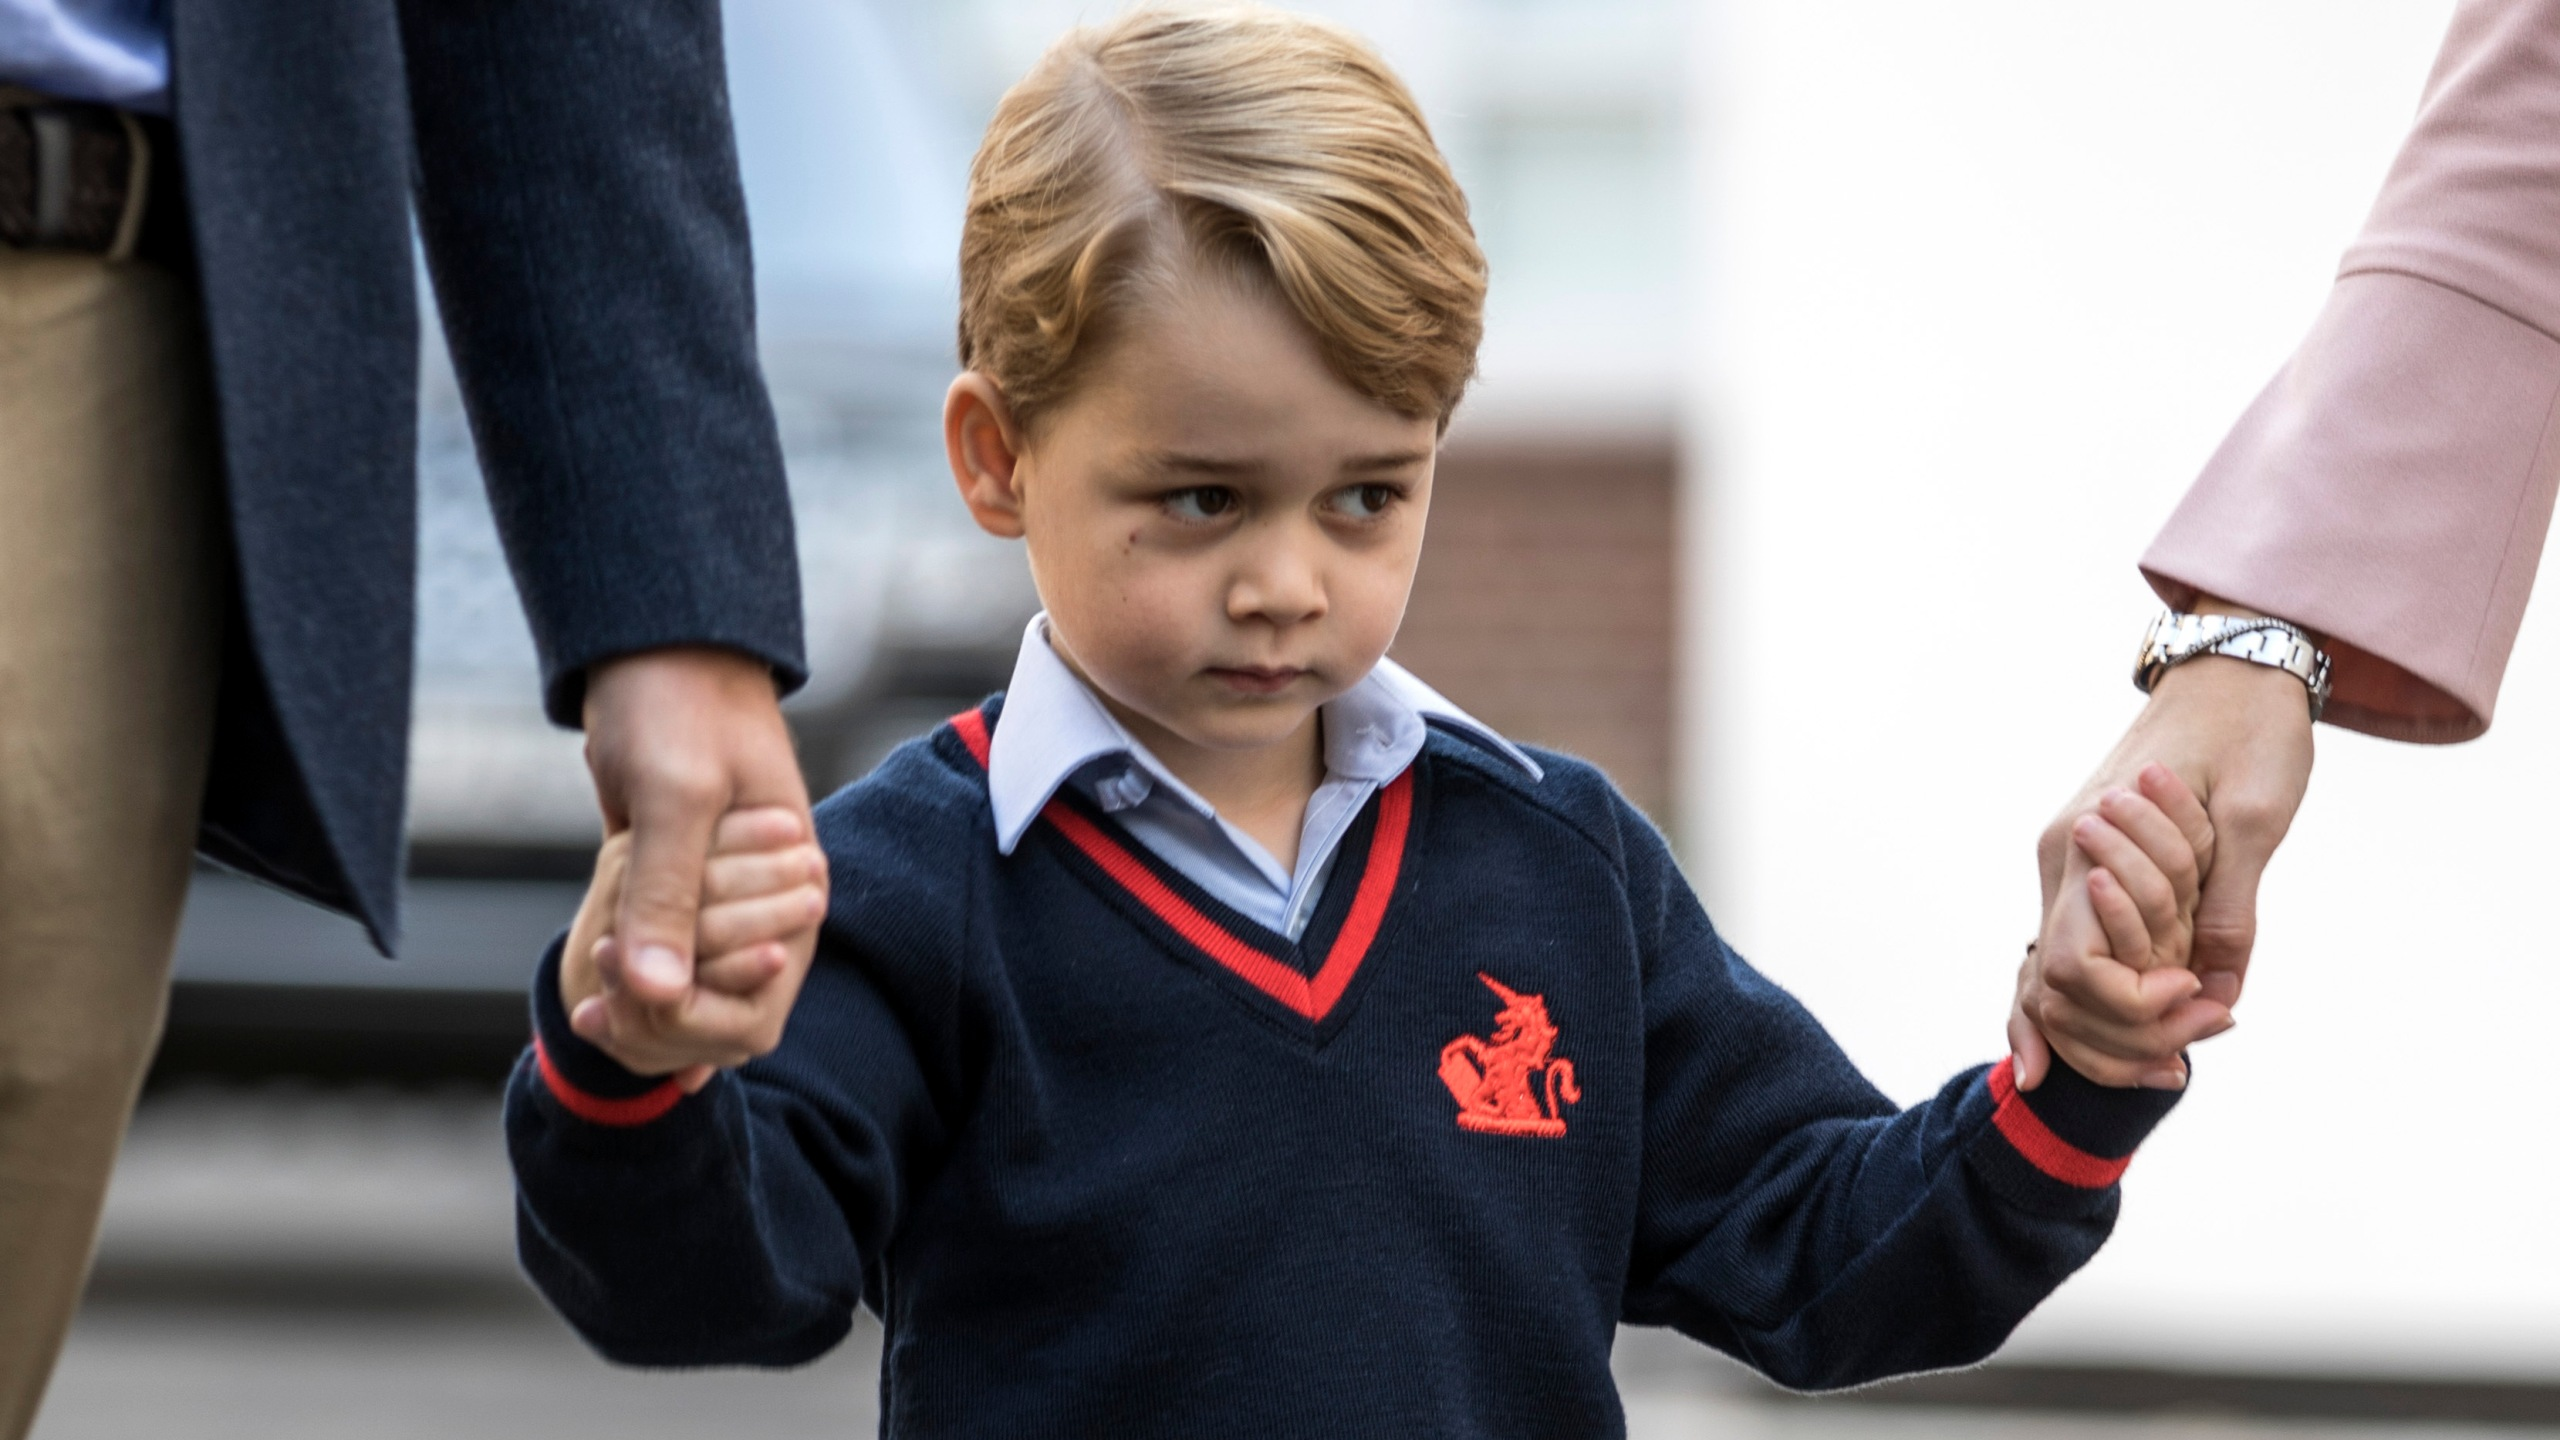 Prince George of Cambridge arrives for his first day of school at Thomas's Battersea on September 7, 2017 in London, England. (Credit: Richard Pohle - WPA Pool/Getty Images)